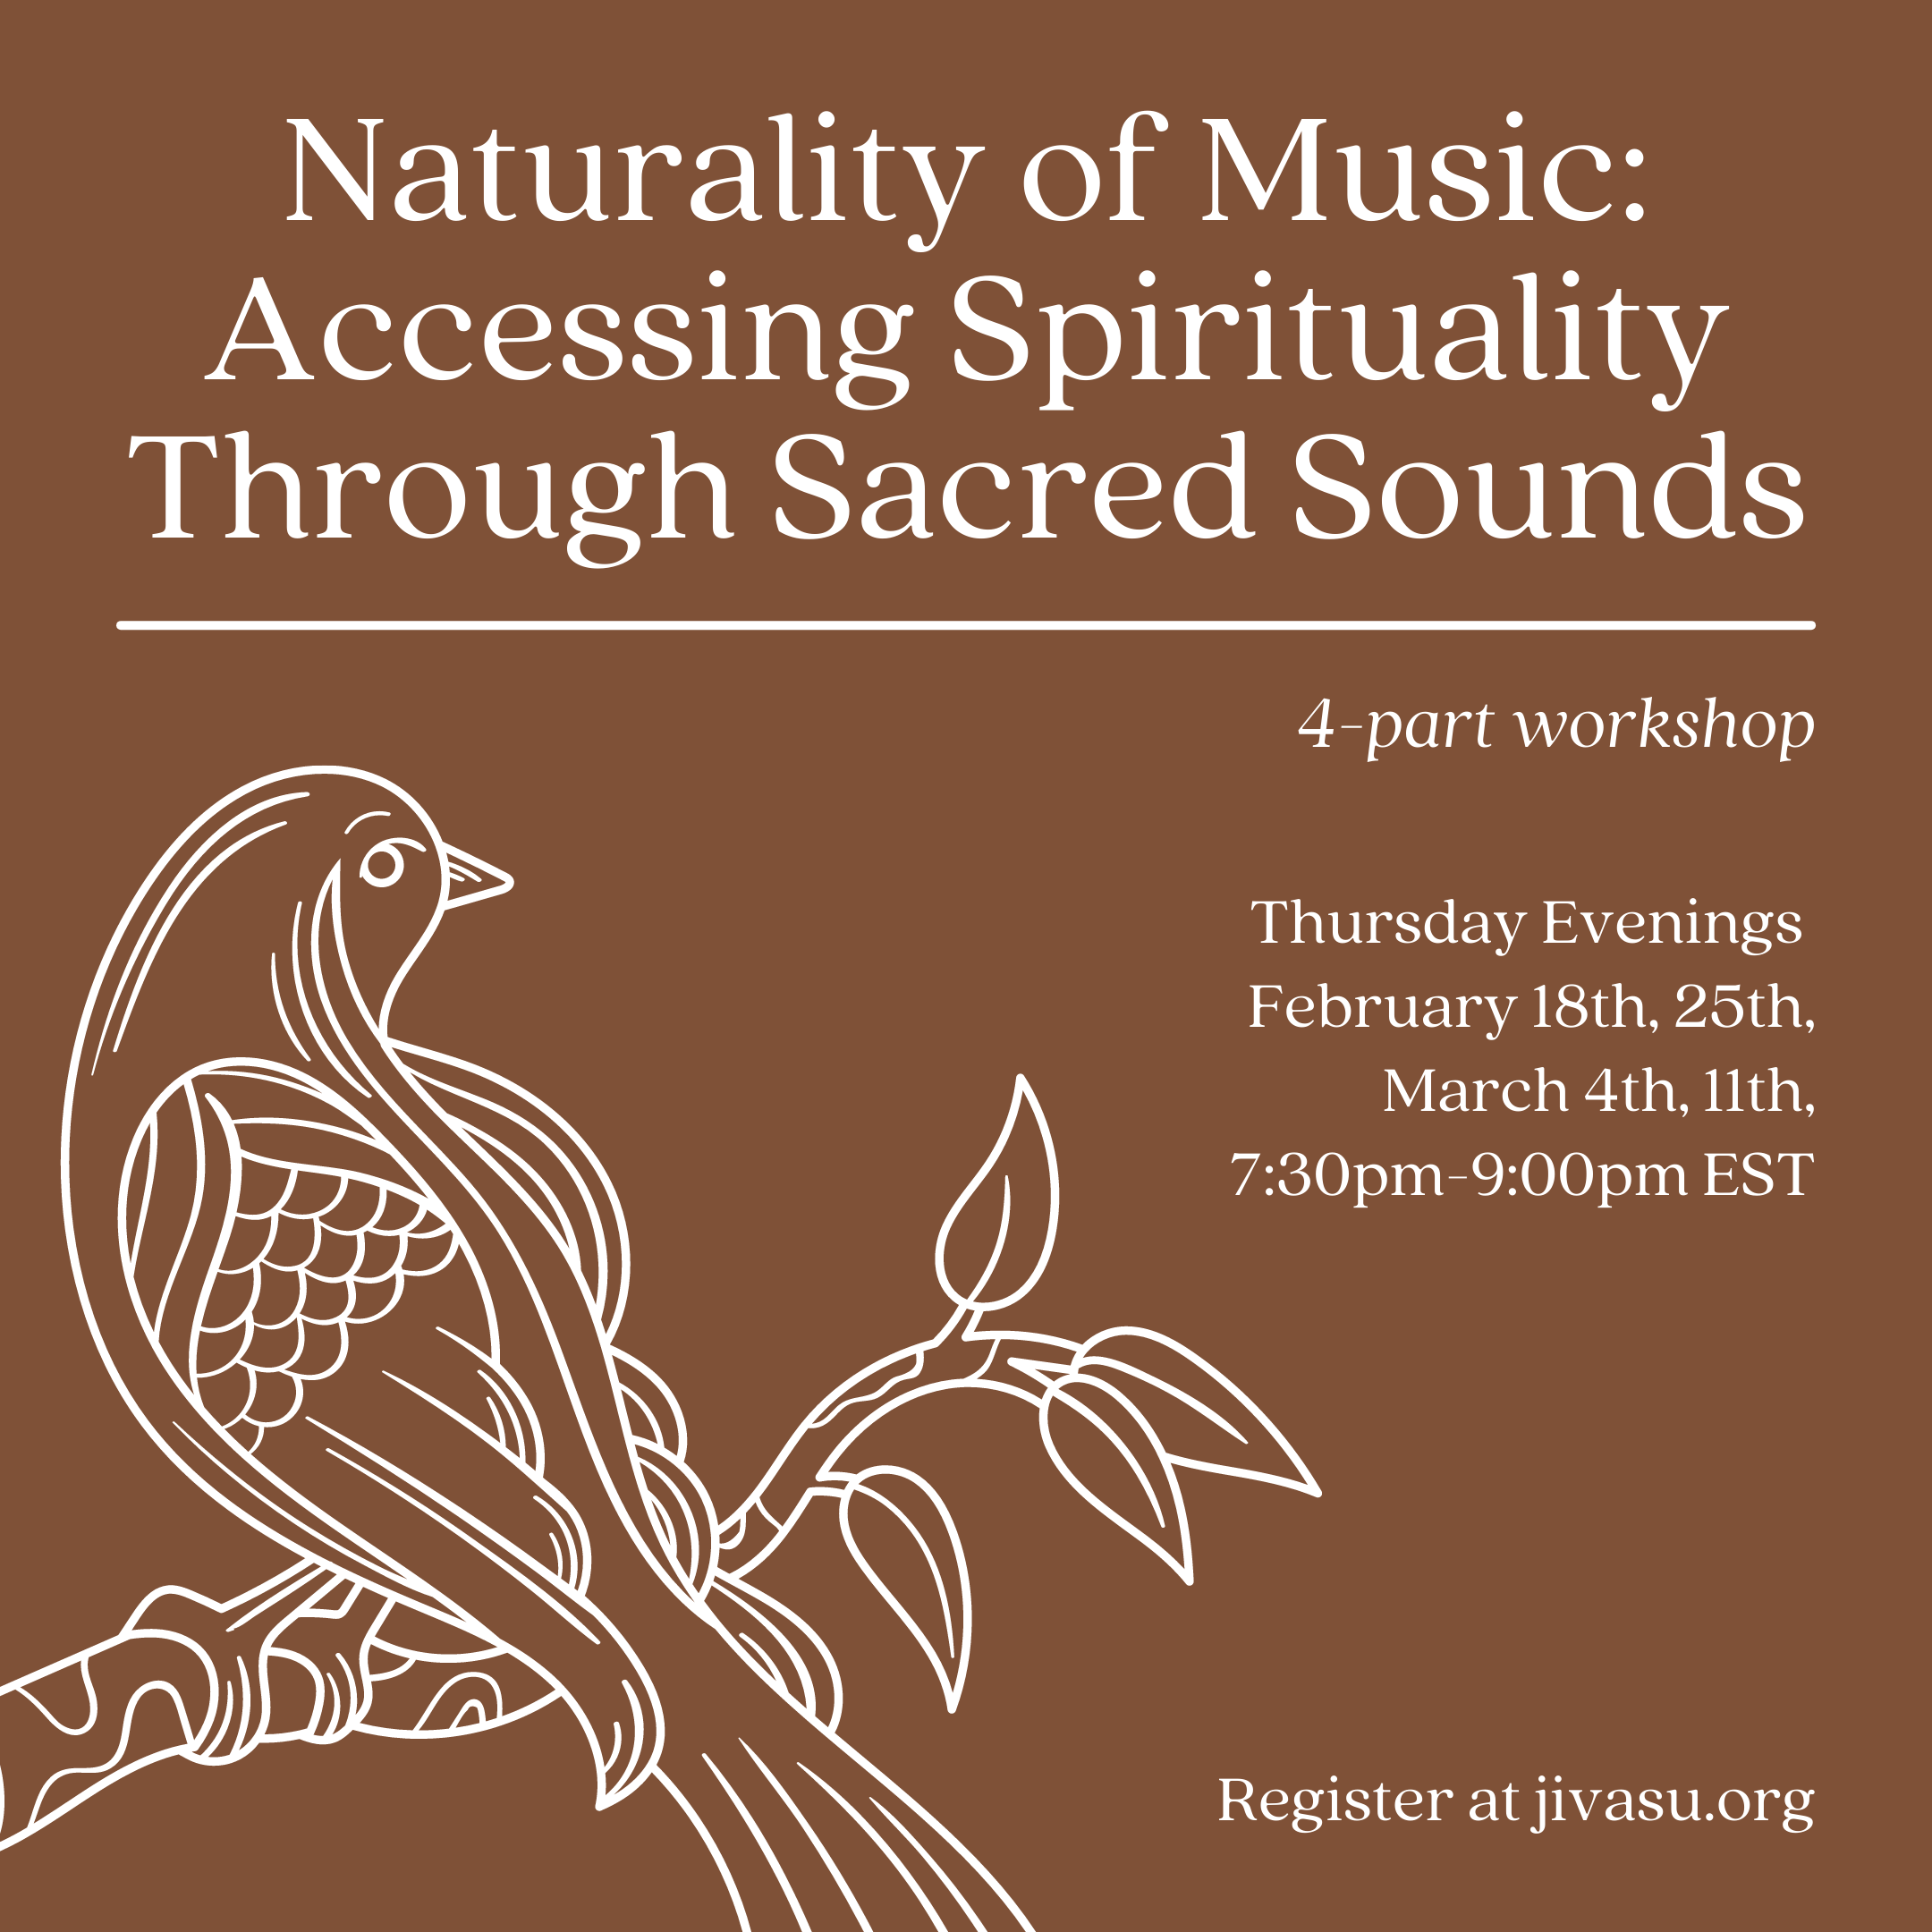 naturality of music_ accessing spirituality through sacred sounds